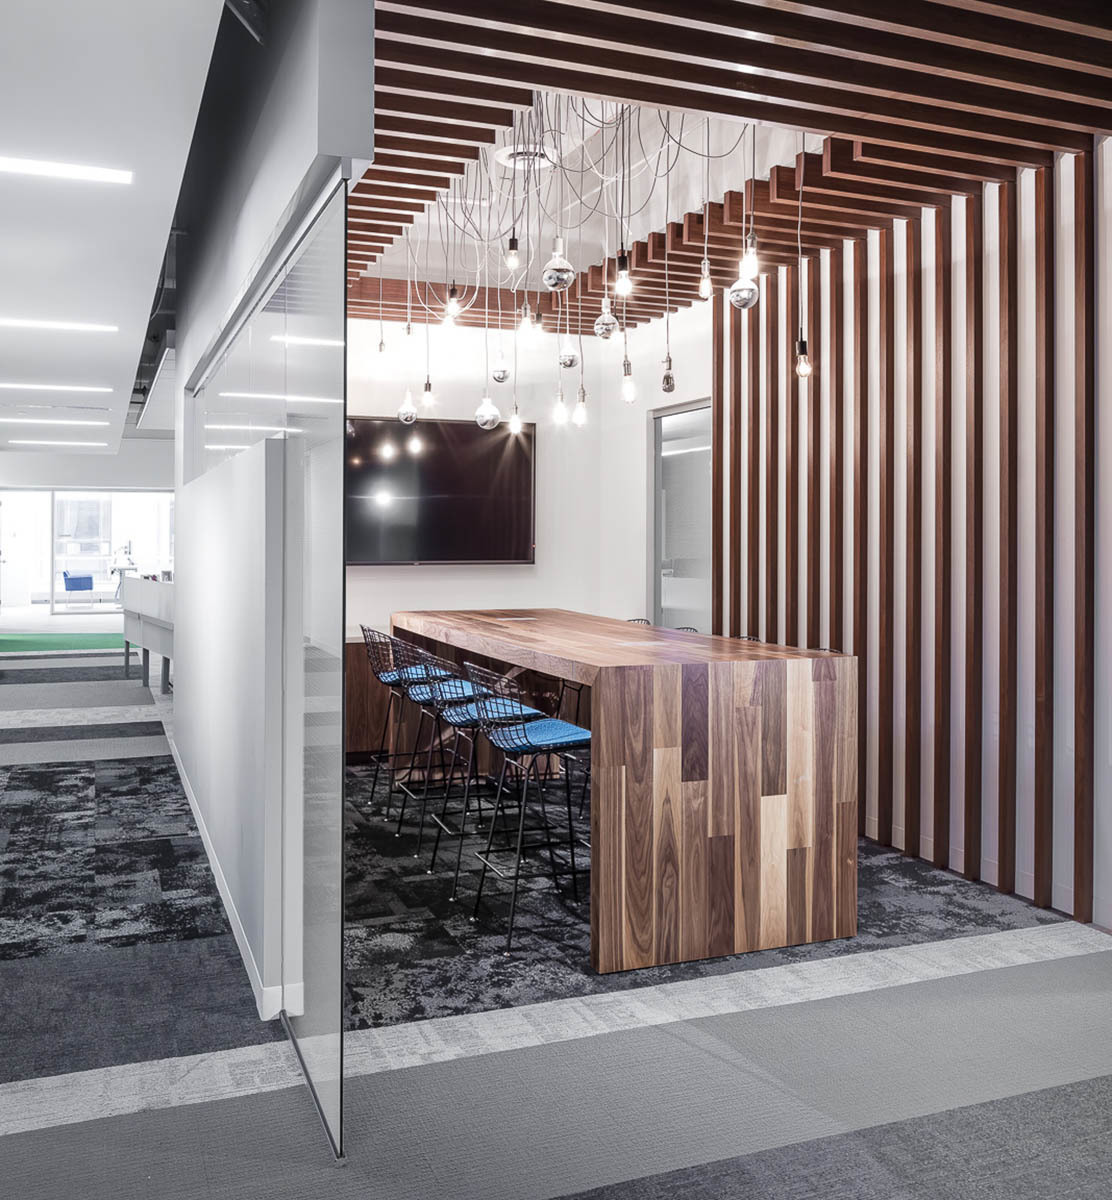 A bright and vibrant open-concept meeting room helps provide a space for open dialogue and collaboration between co-workers.